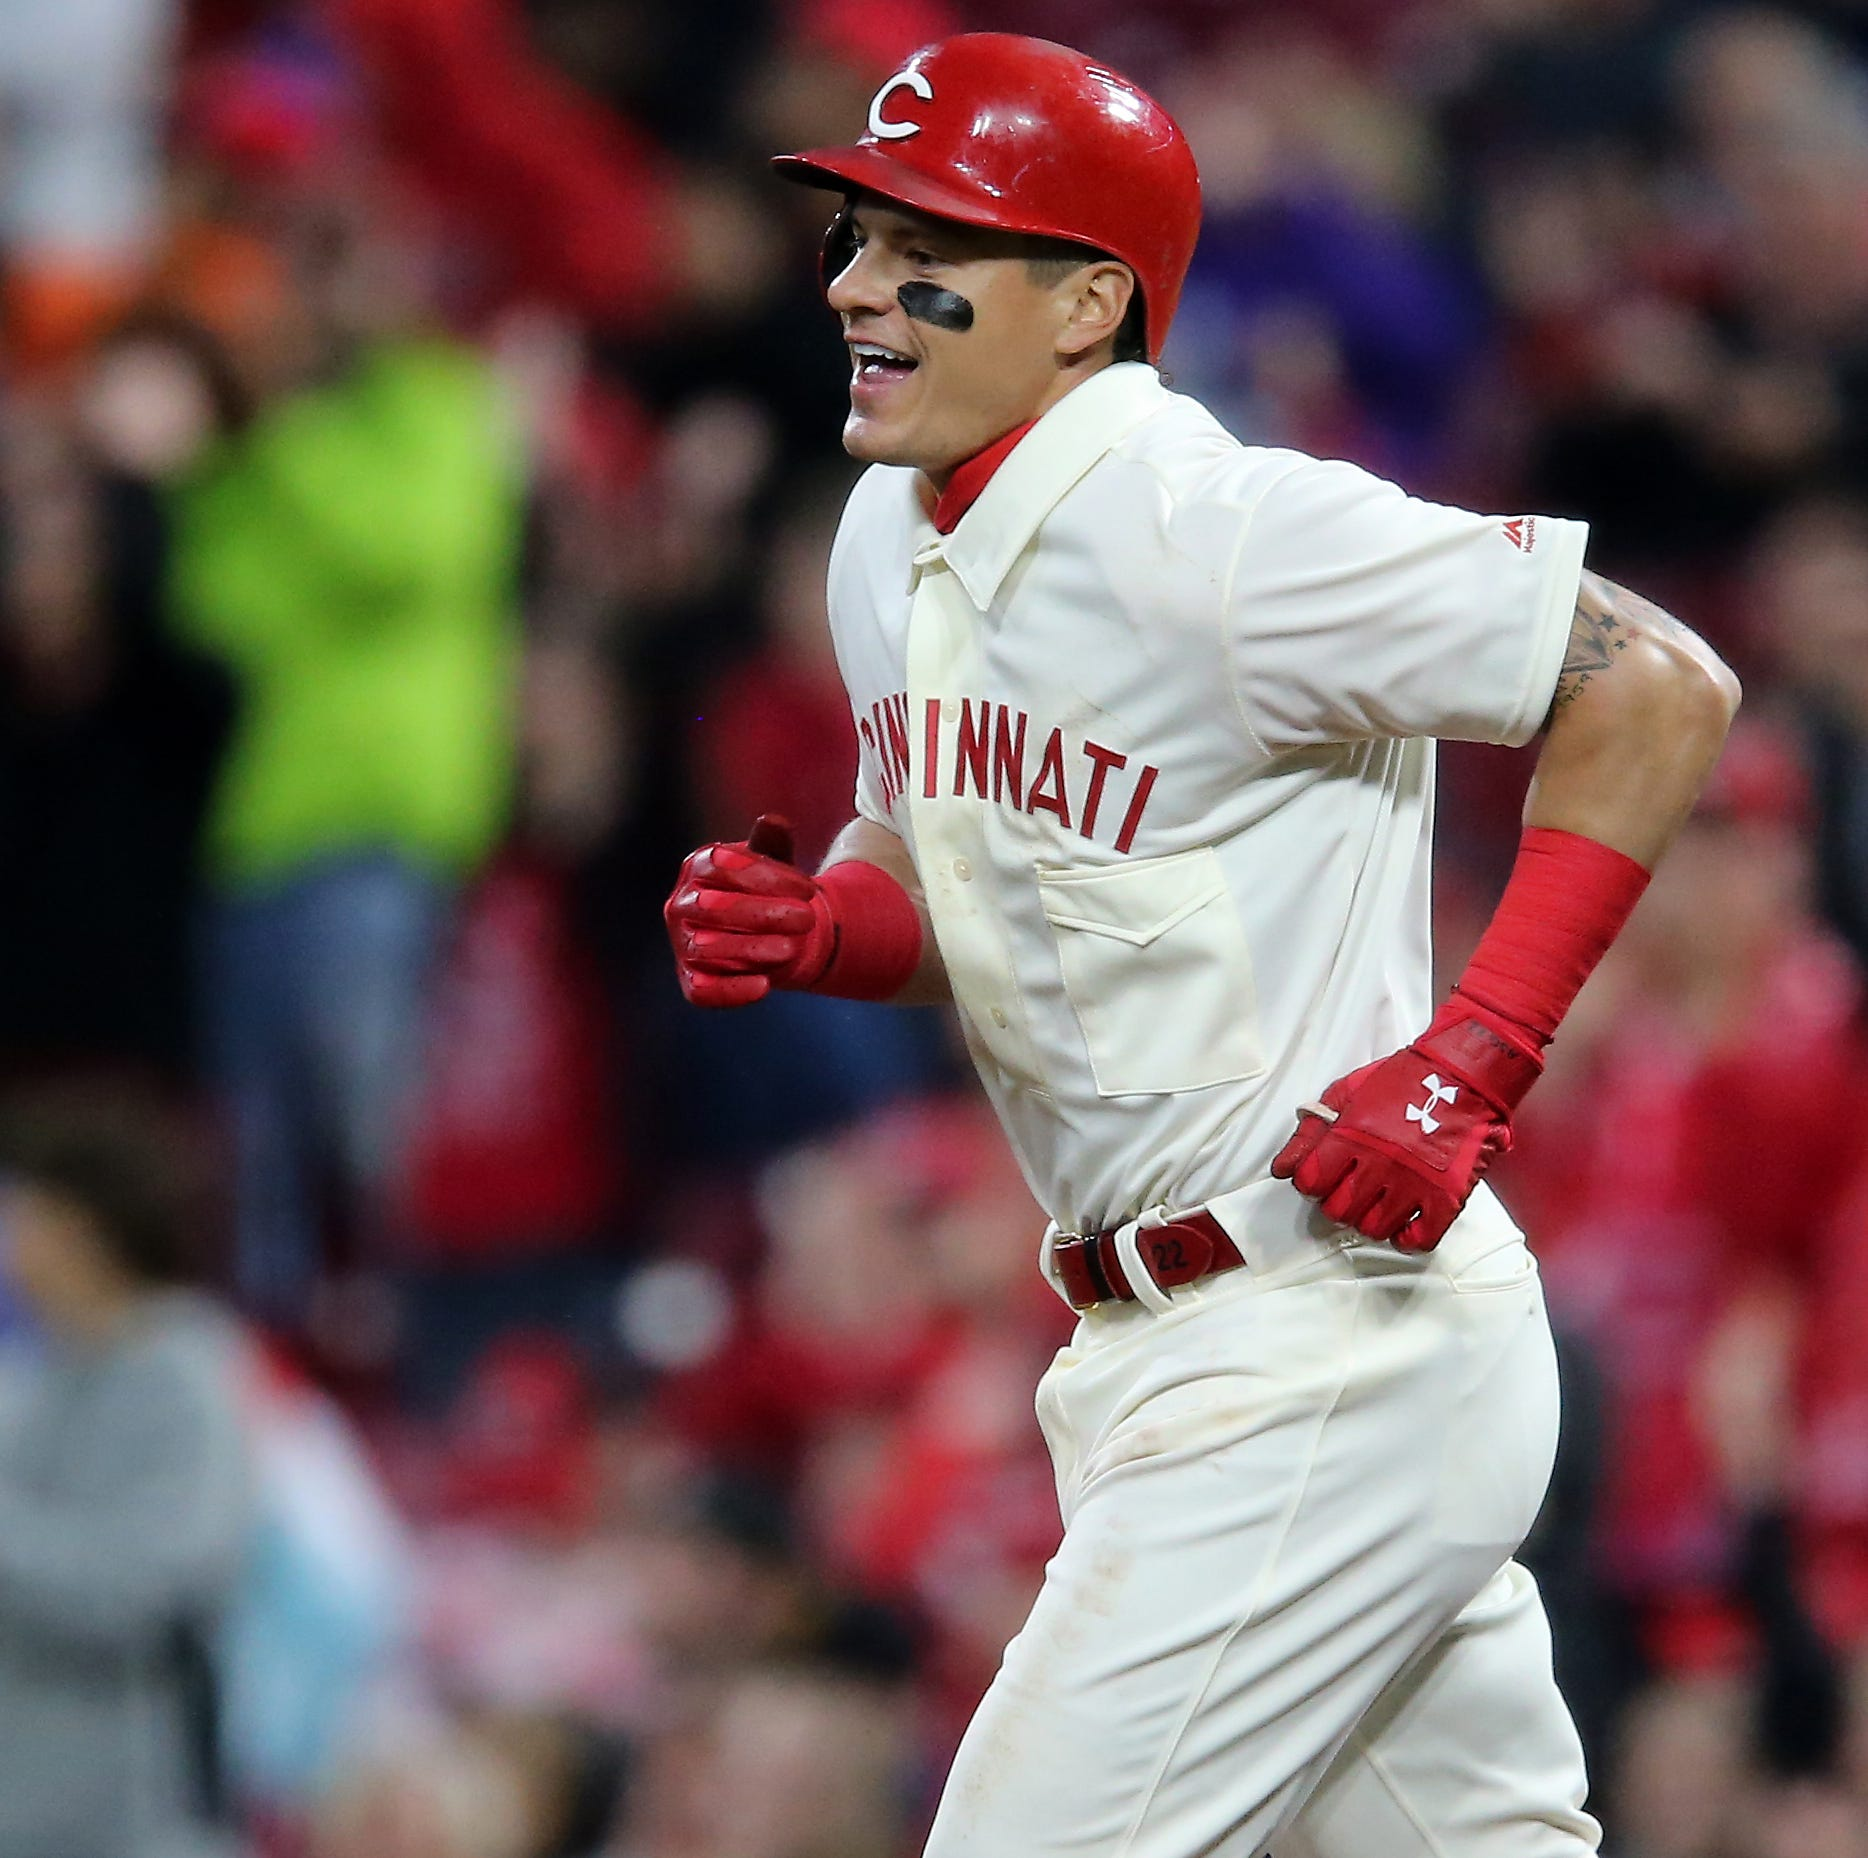 Cincinnati Reds hit back-to-back-to-back homers on 3 straight pitches against Giants